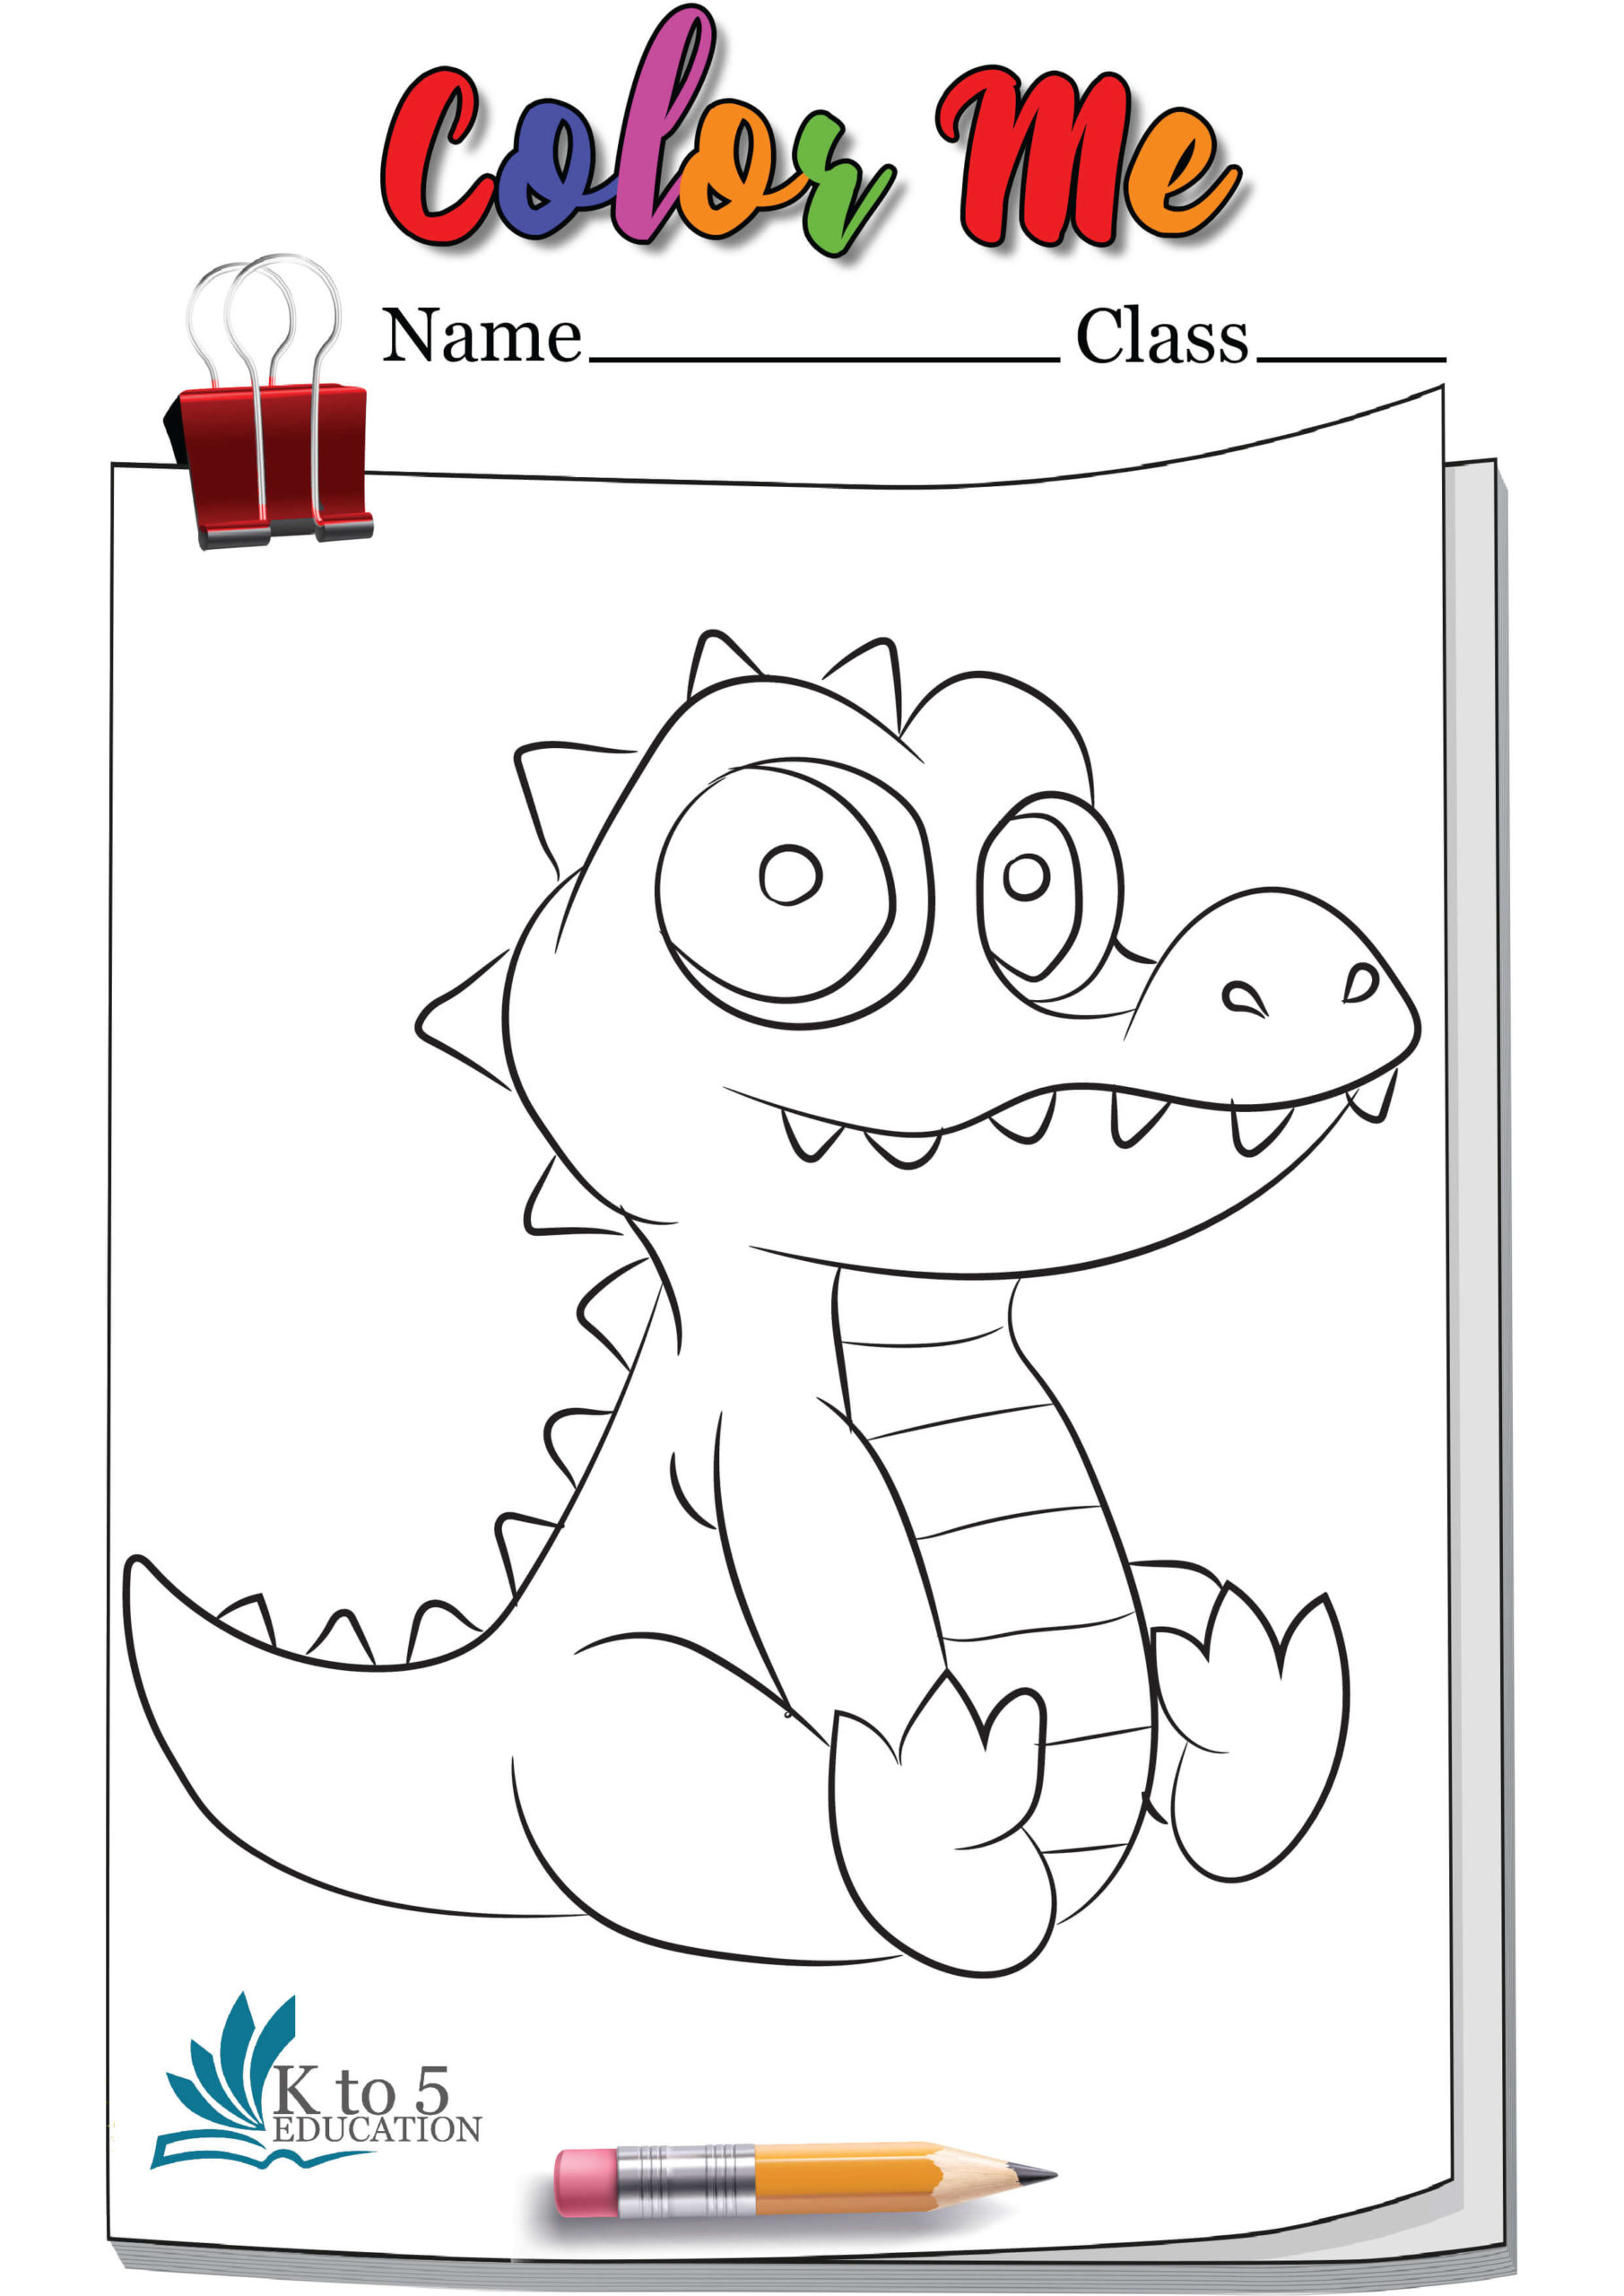 Baby Crocodile coloring page worksheet